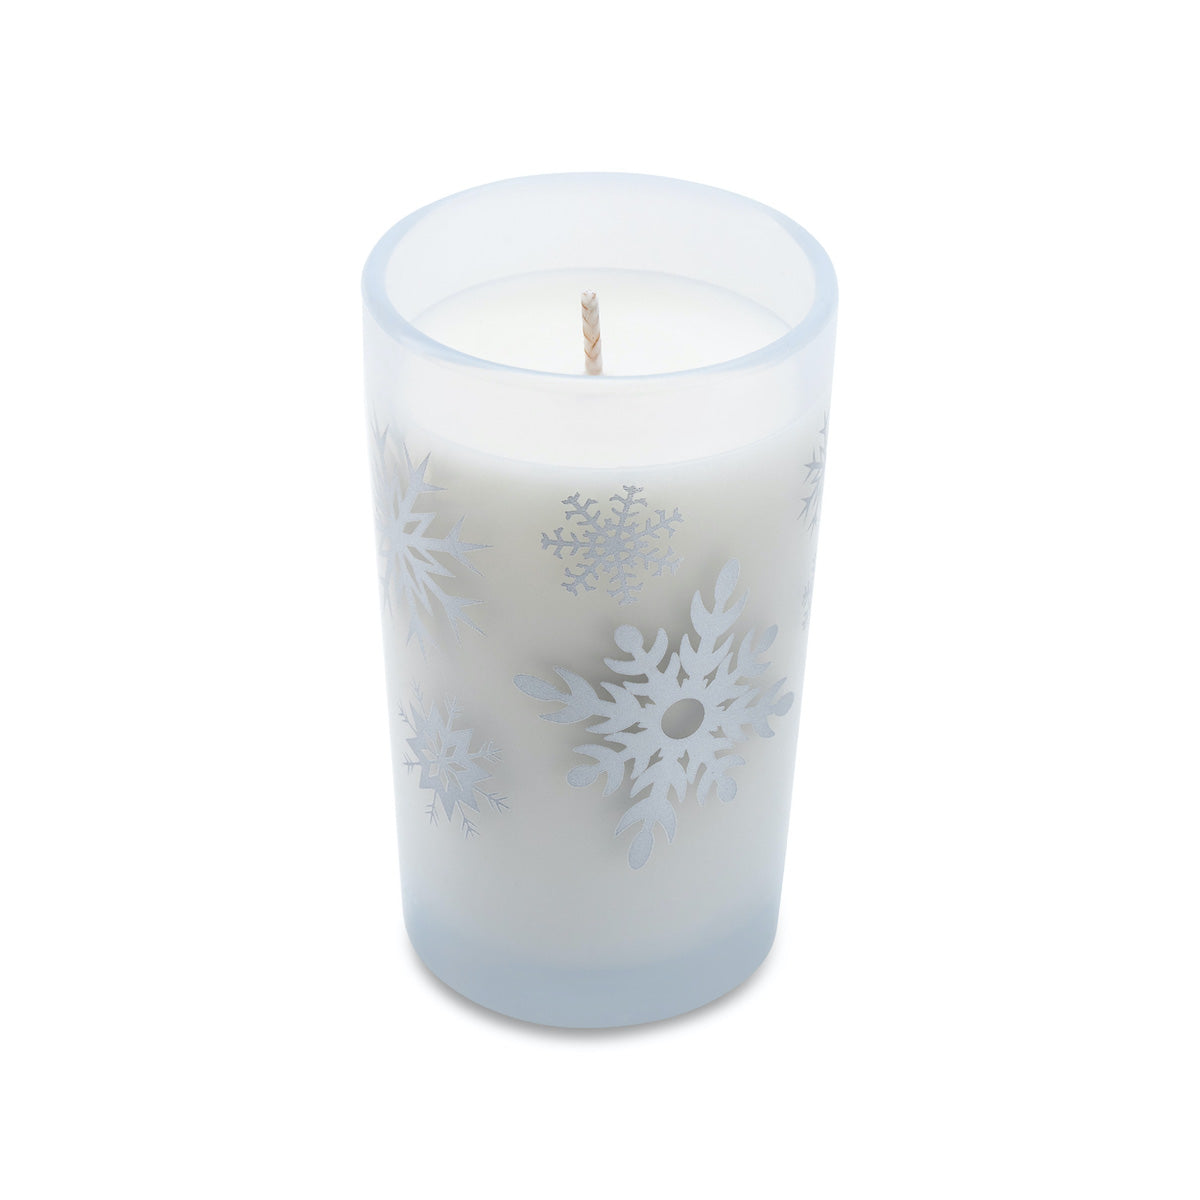 5.5oz Holiday Candle - Frosted White (Silver Snowflakes)